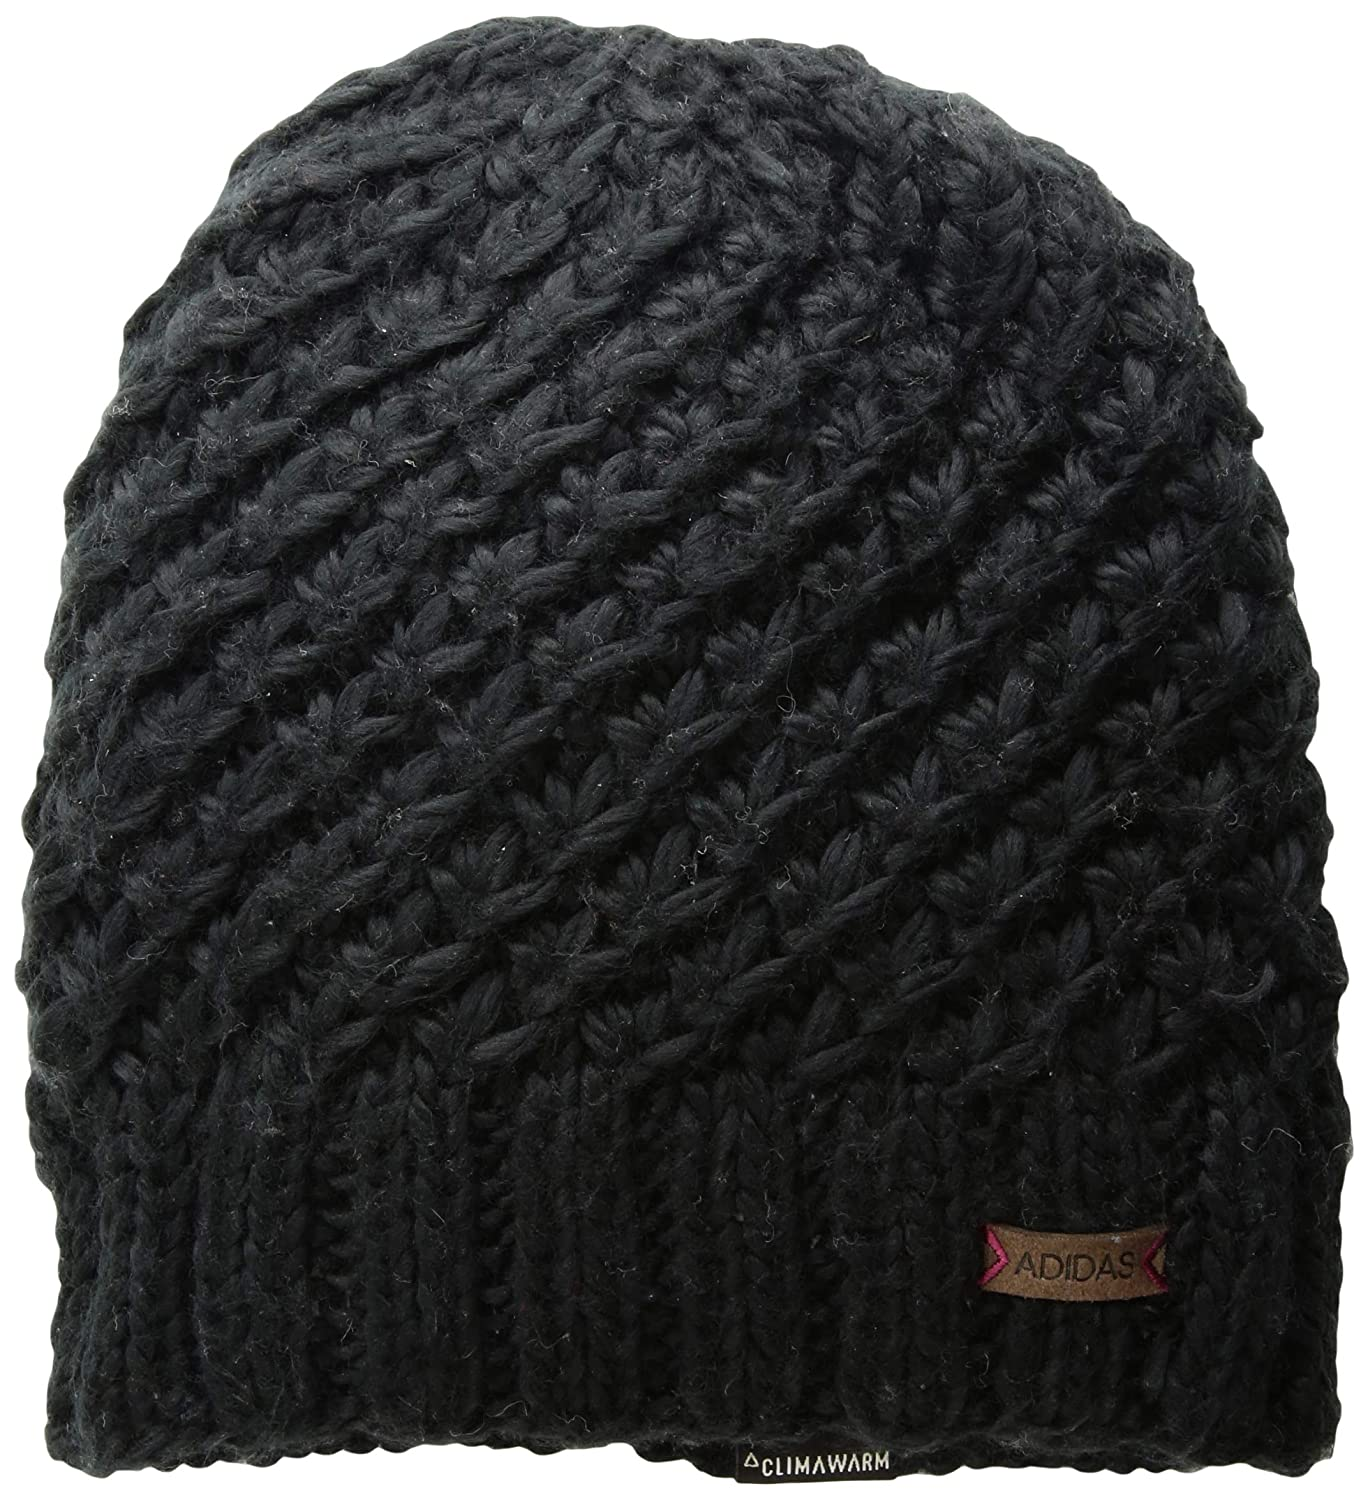 ee6c9df3ae414 Amazon.com  adidas Women s Whittier Beanie